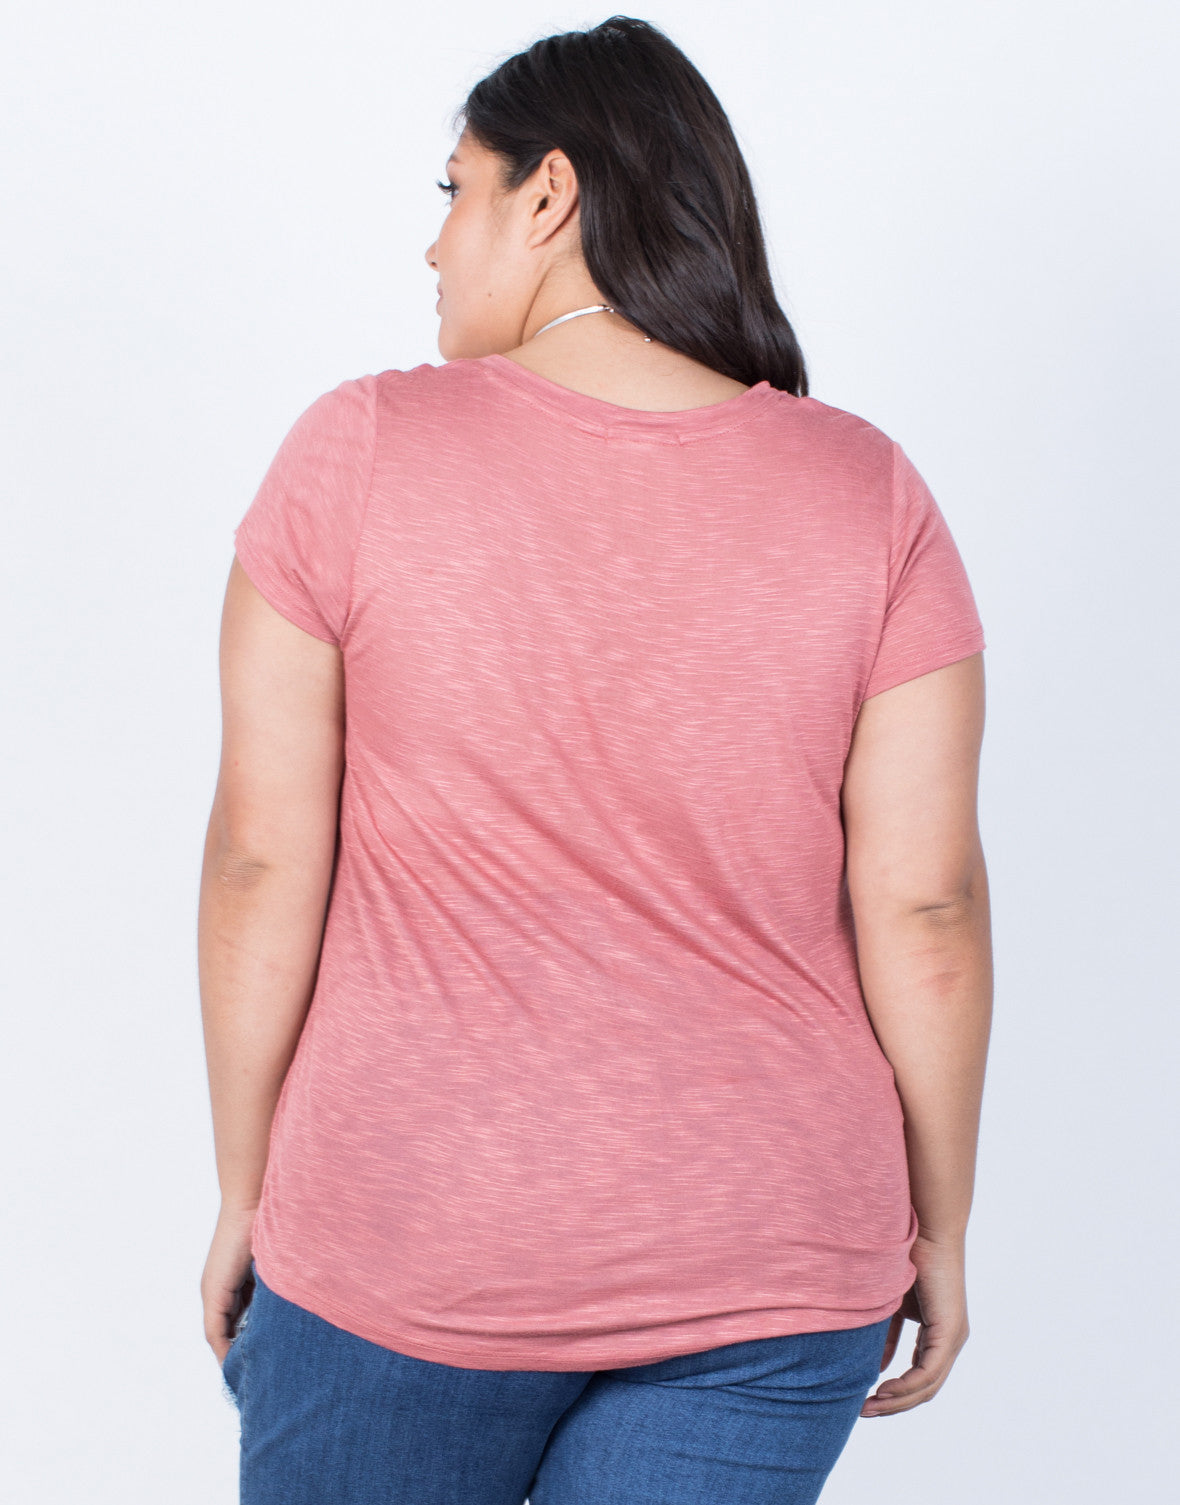 Marsala Plus Size Comfy Pocket Tee - Back View